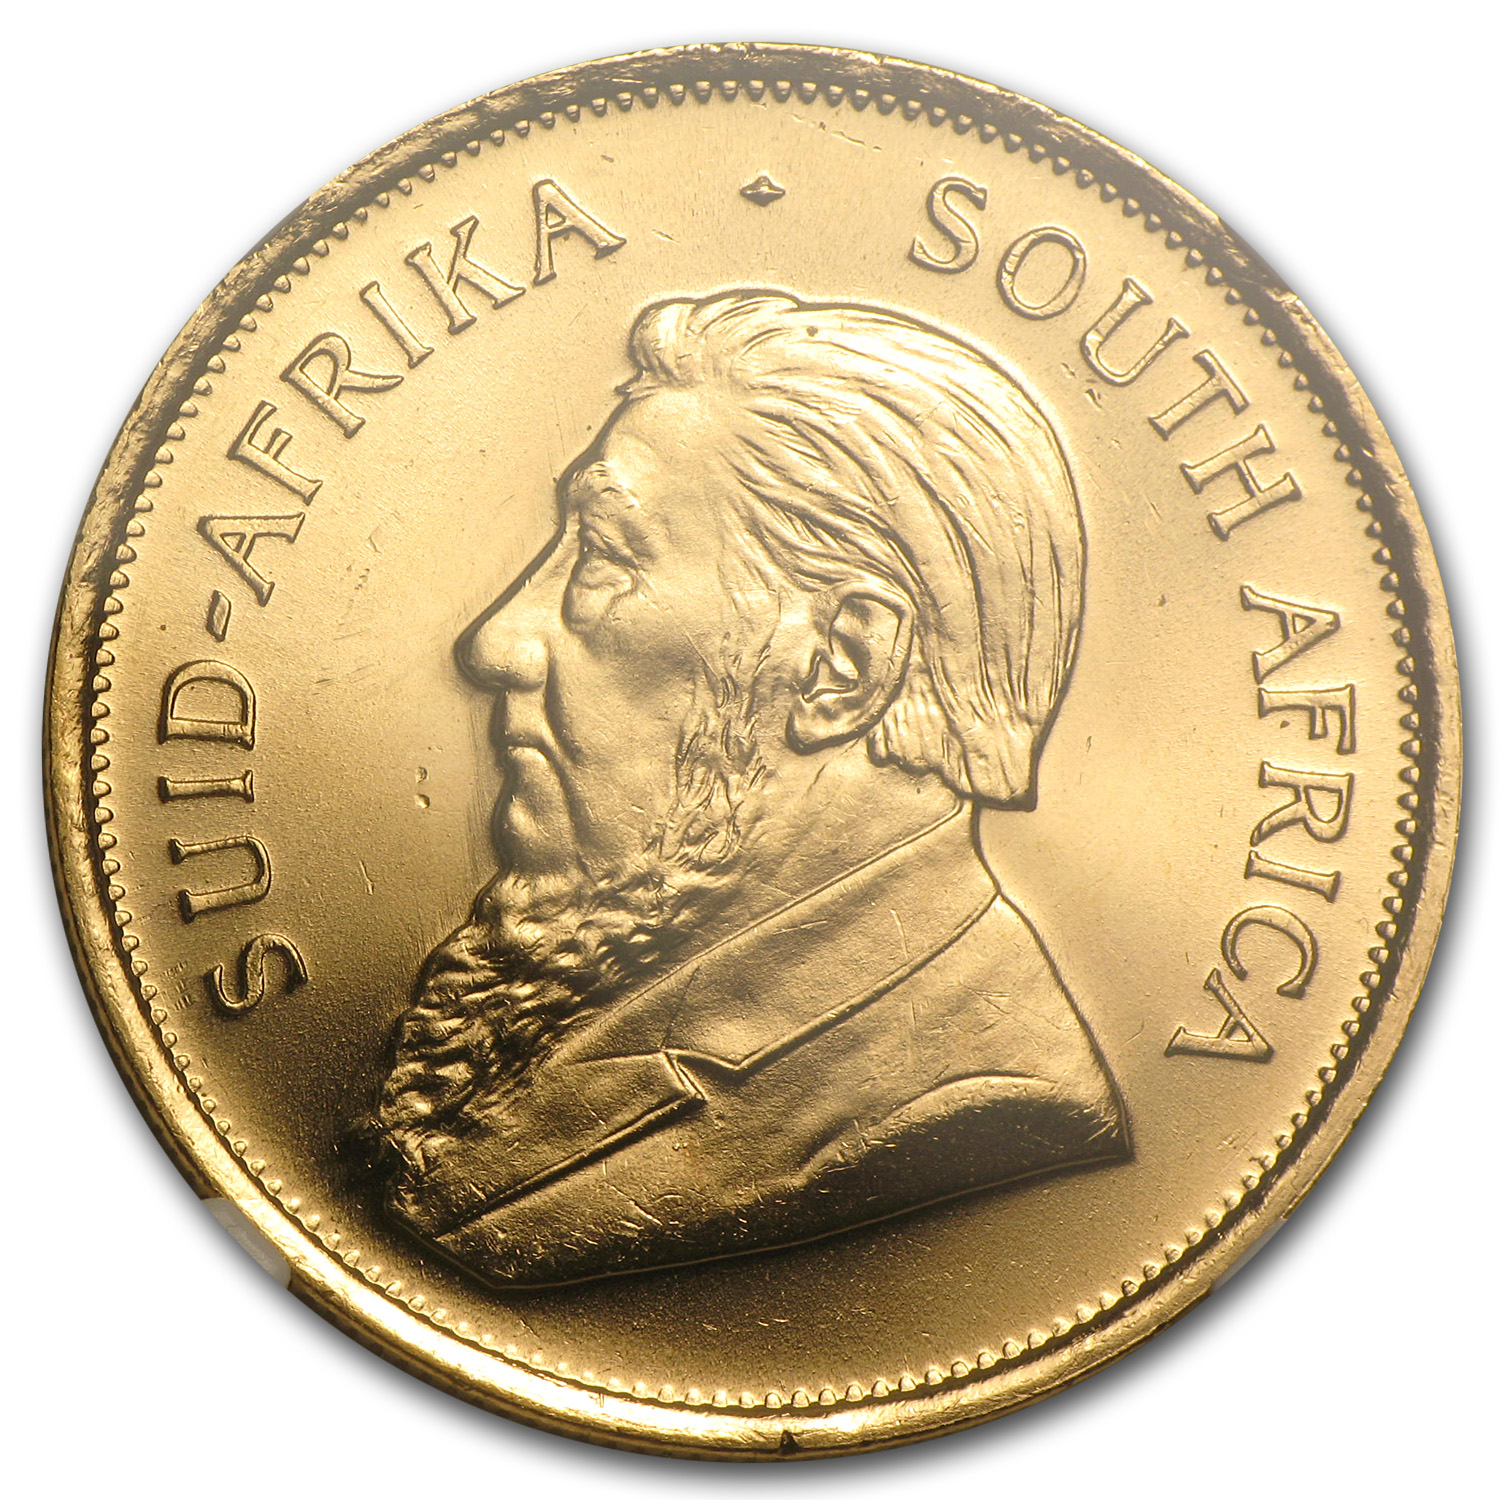 1993 1 oz Gold South African Krugerrand MS-65 NGC